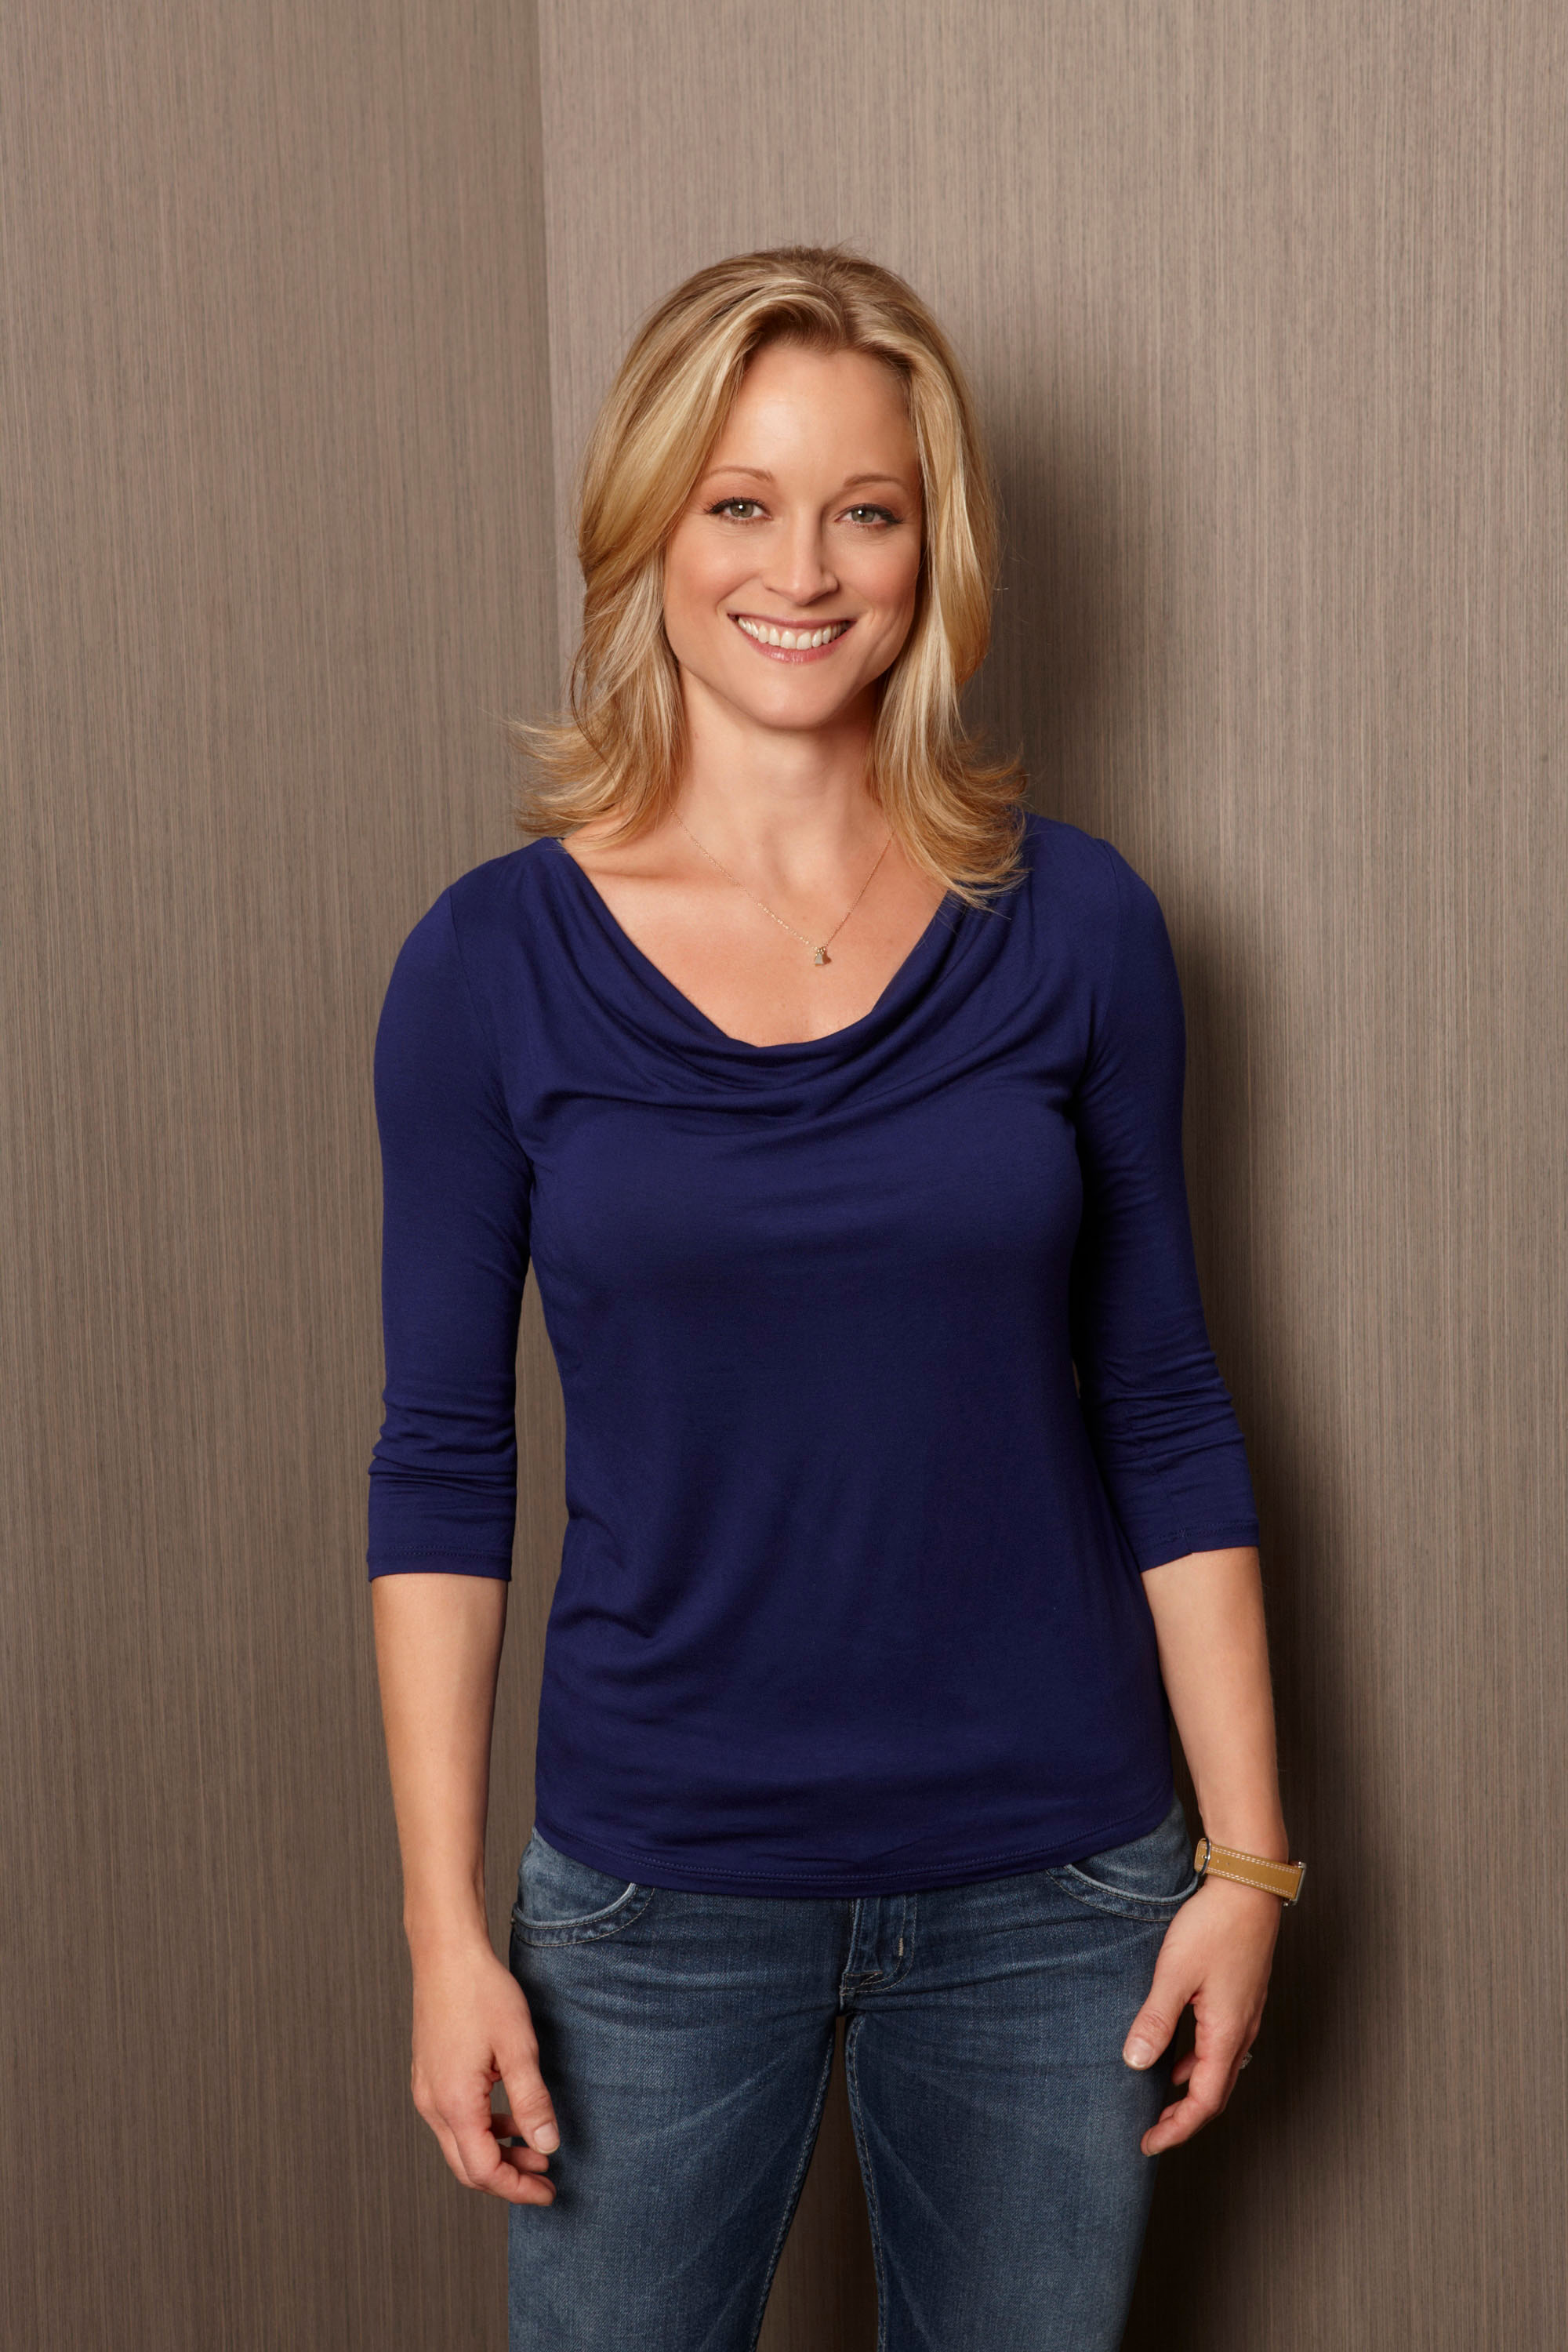 teri polo photo 4 of 13 pics wallpaper   photo 401031